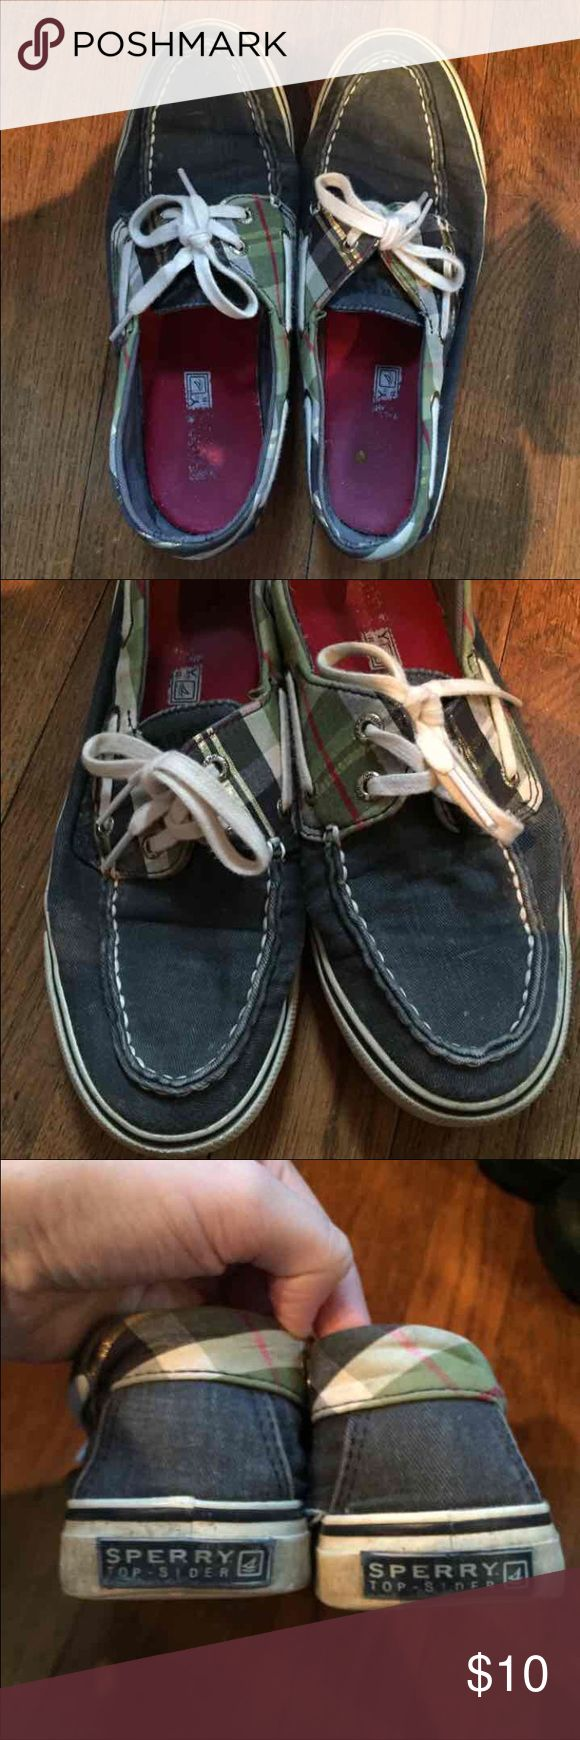 Woman's 6.5 Plaid Preppy Sperry Boat Shoes These shoes have been well loved! They're still in good condition except a tear on the side of one of them (check photo) but is fixable. These fit like a glove and are super cute and preppy! No trades.  📦 MOVING SALE! I am moving in August and am need of getting rid of as much as possible! Not all prices are firm and I am most likely willing to negotiate, just no lowballing or trades please. Thanks for stopping in my closet! Sperry Top-Sider Shoes…